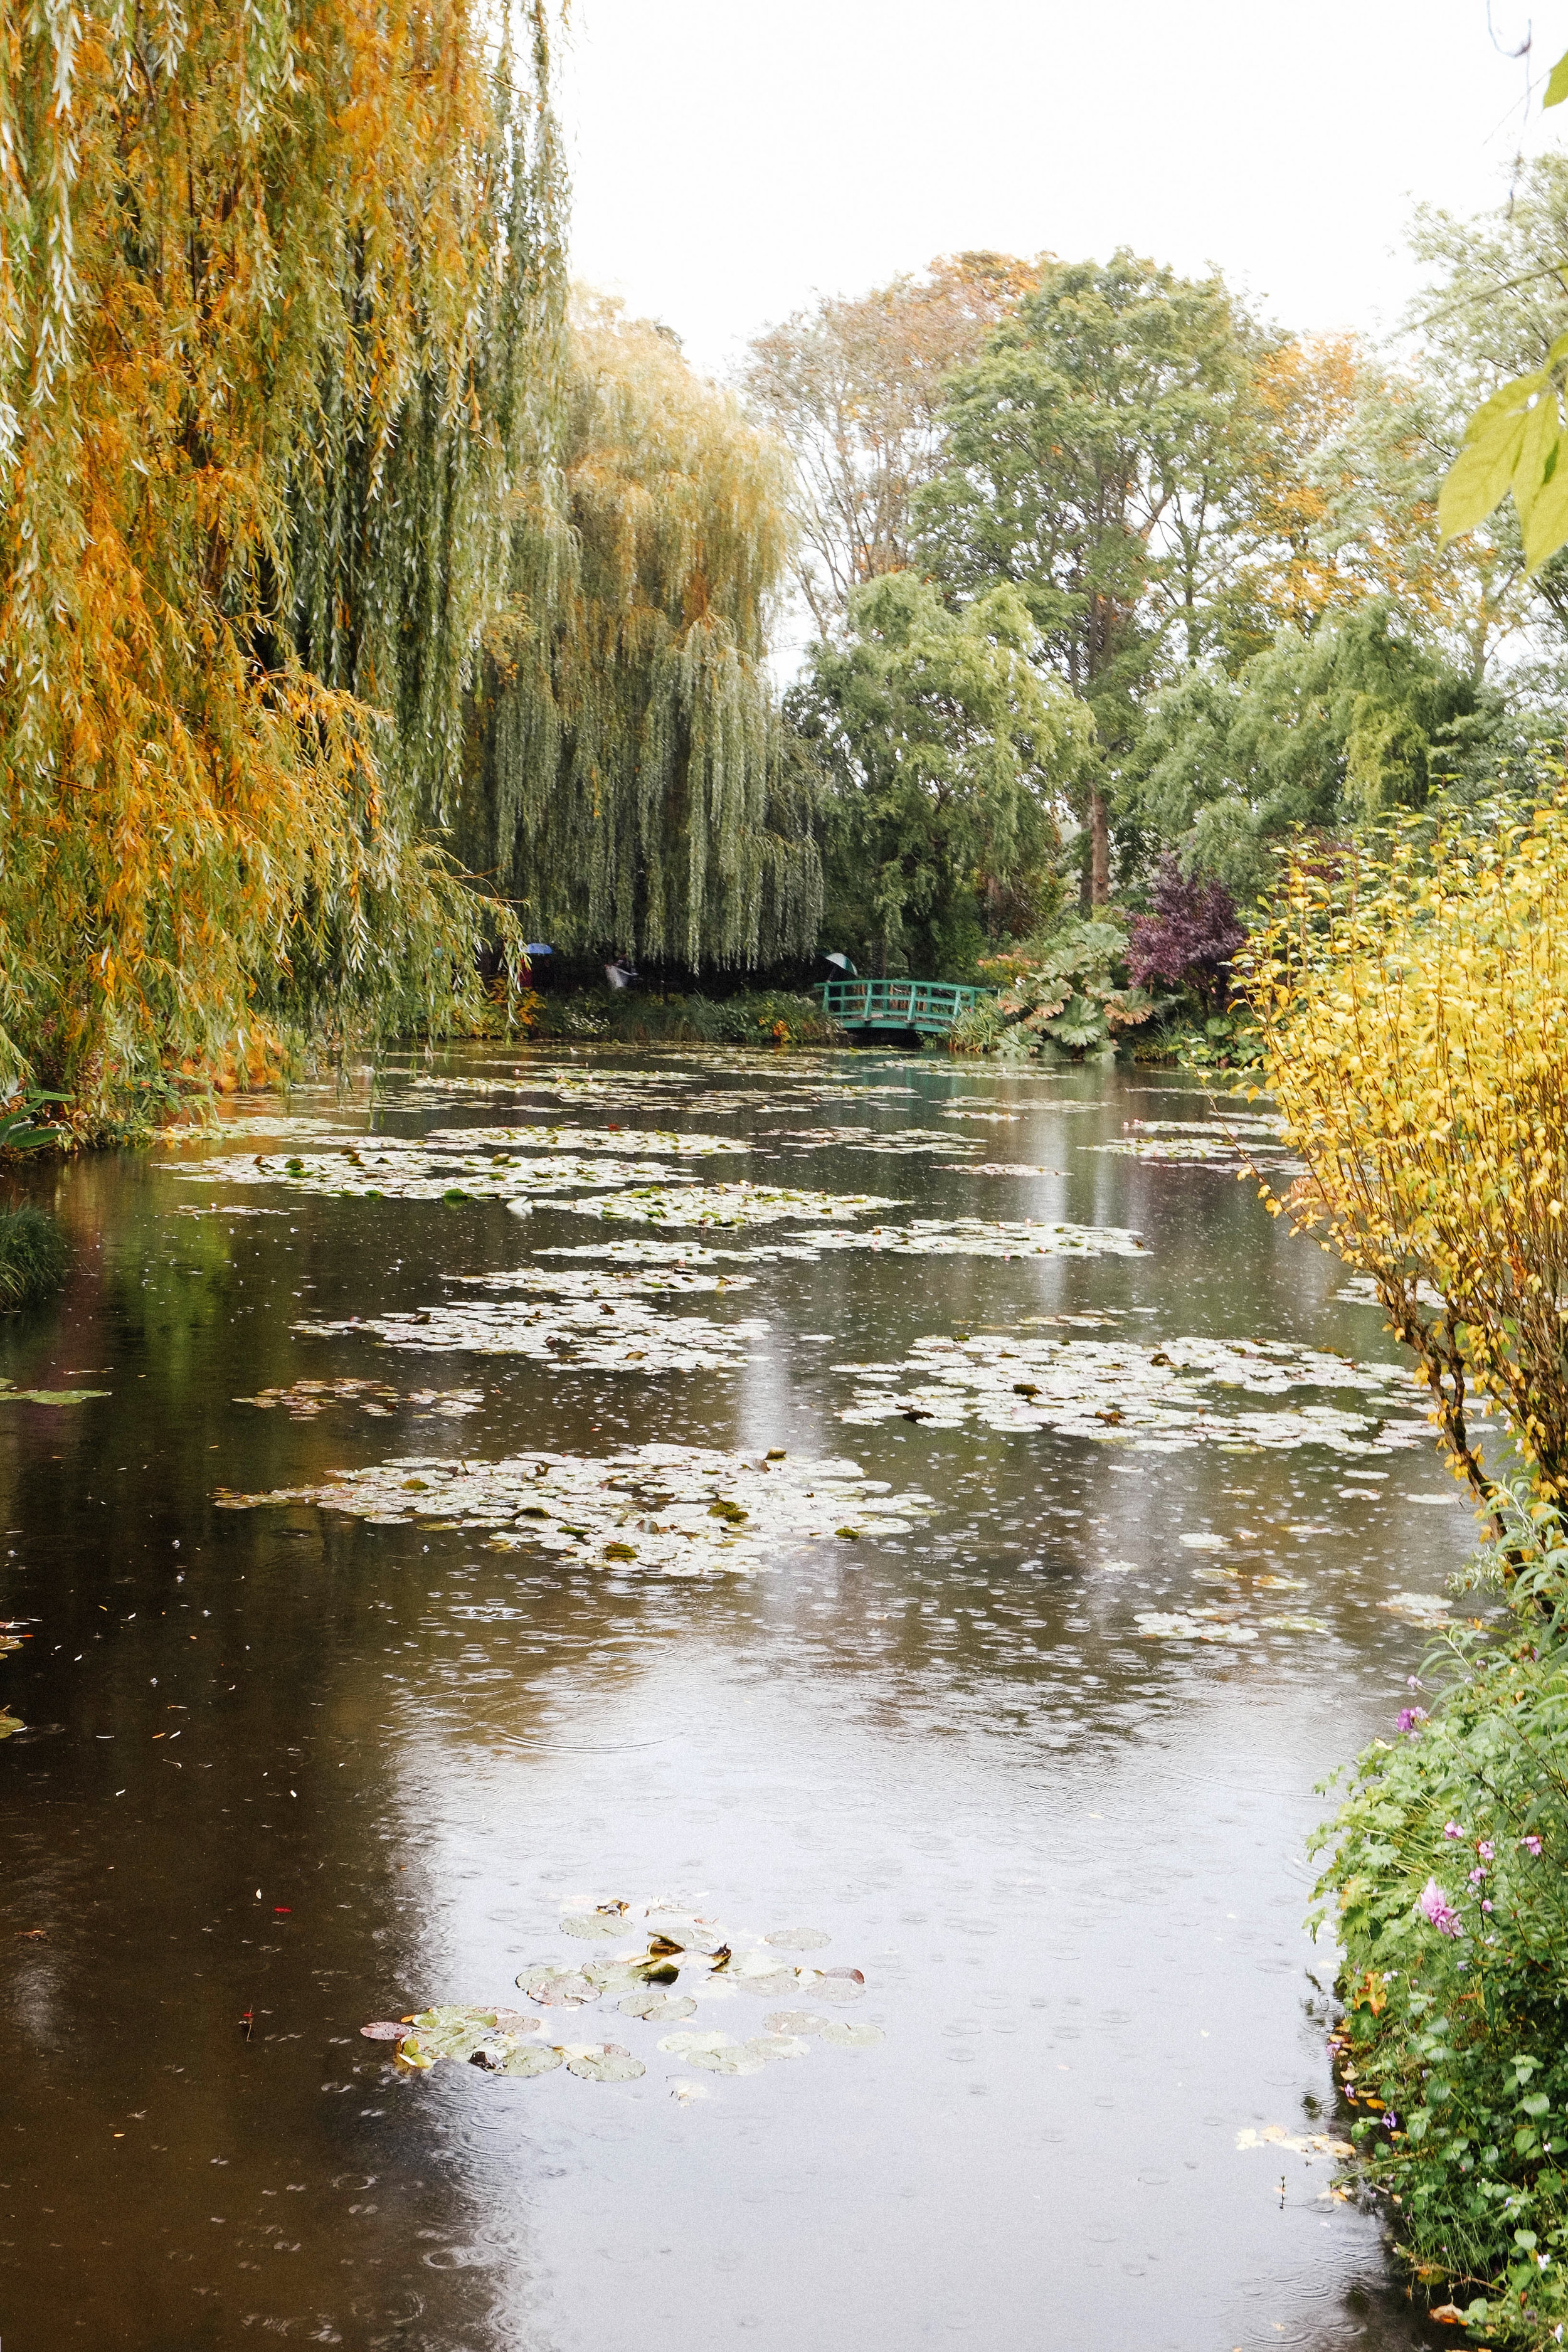 Lesly Lotha - Giverny - France - Europe - 3